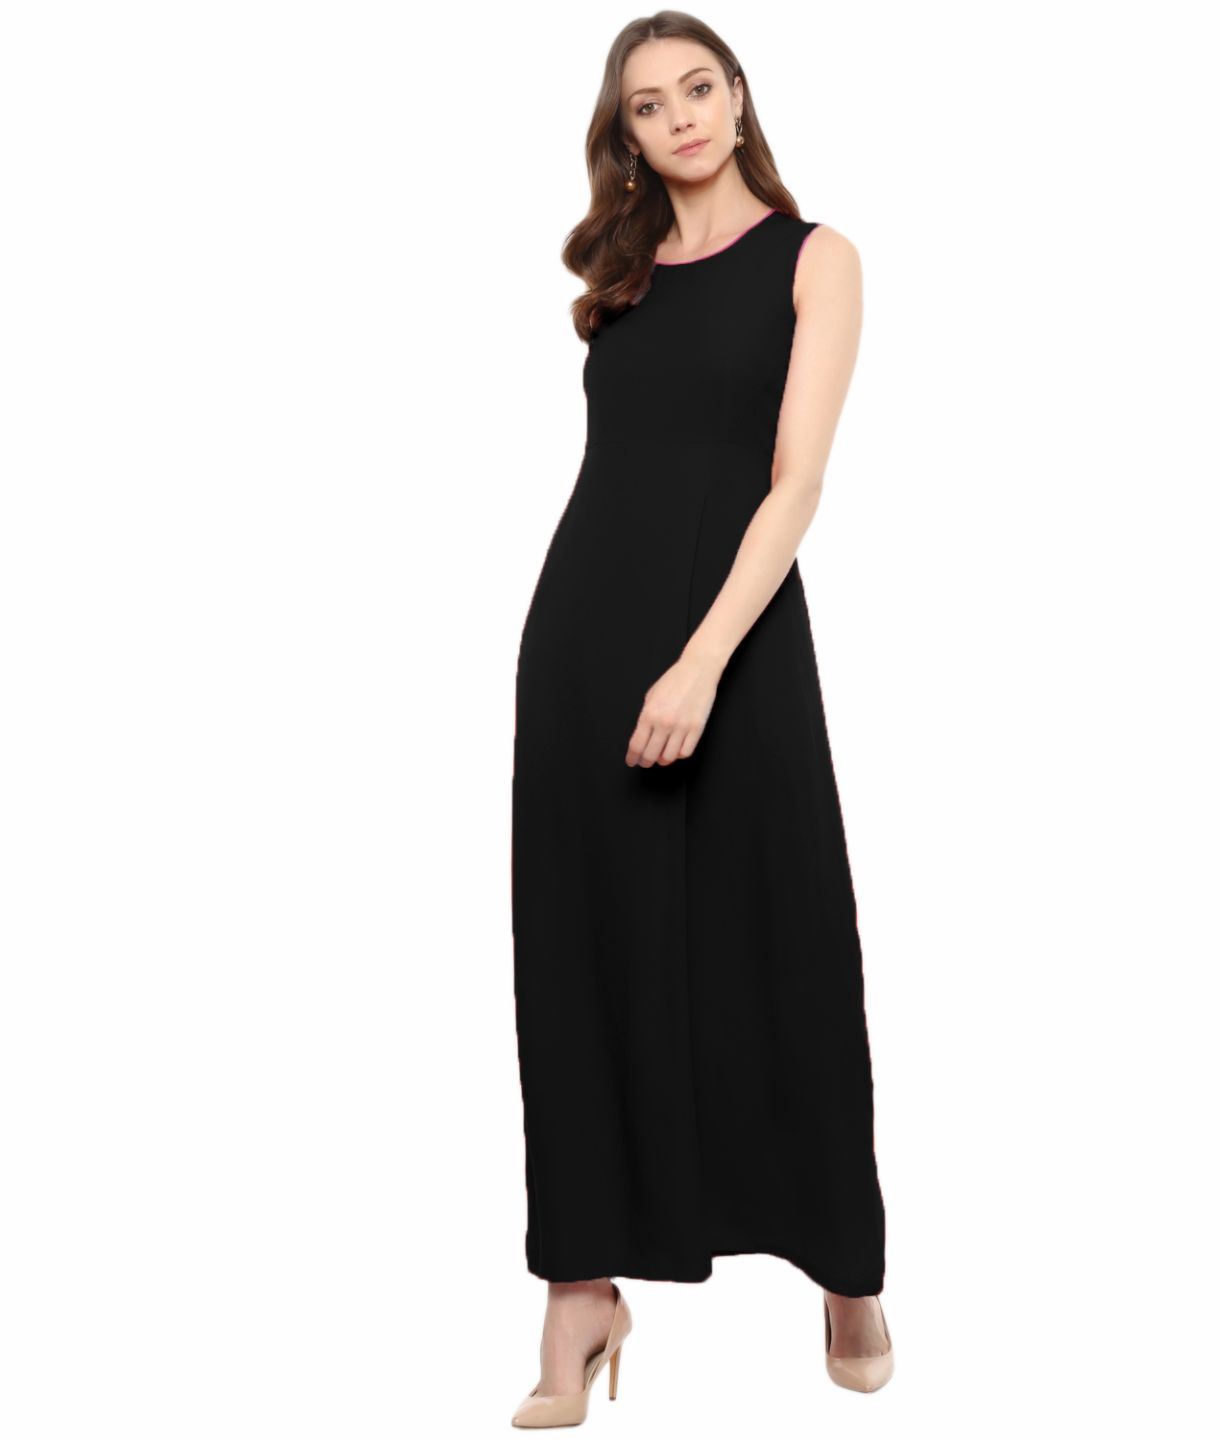 Uptownie Plus Black Solid Sleeveless Crepe Maxi Dress/Gown